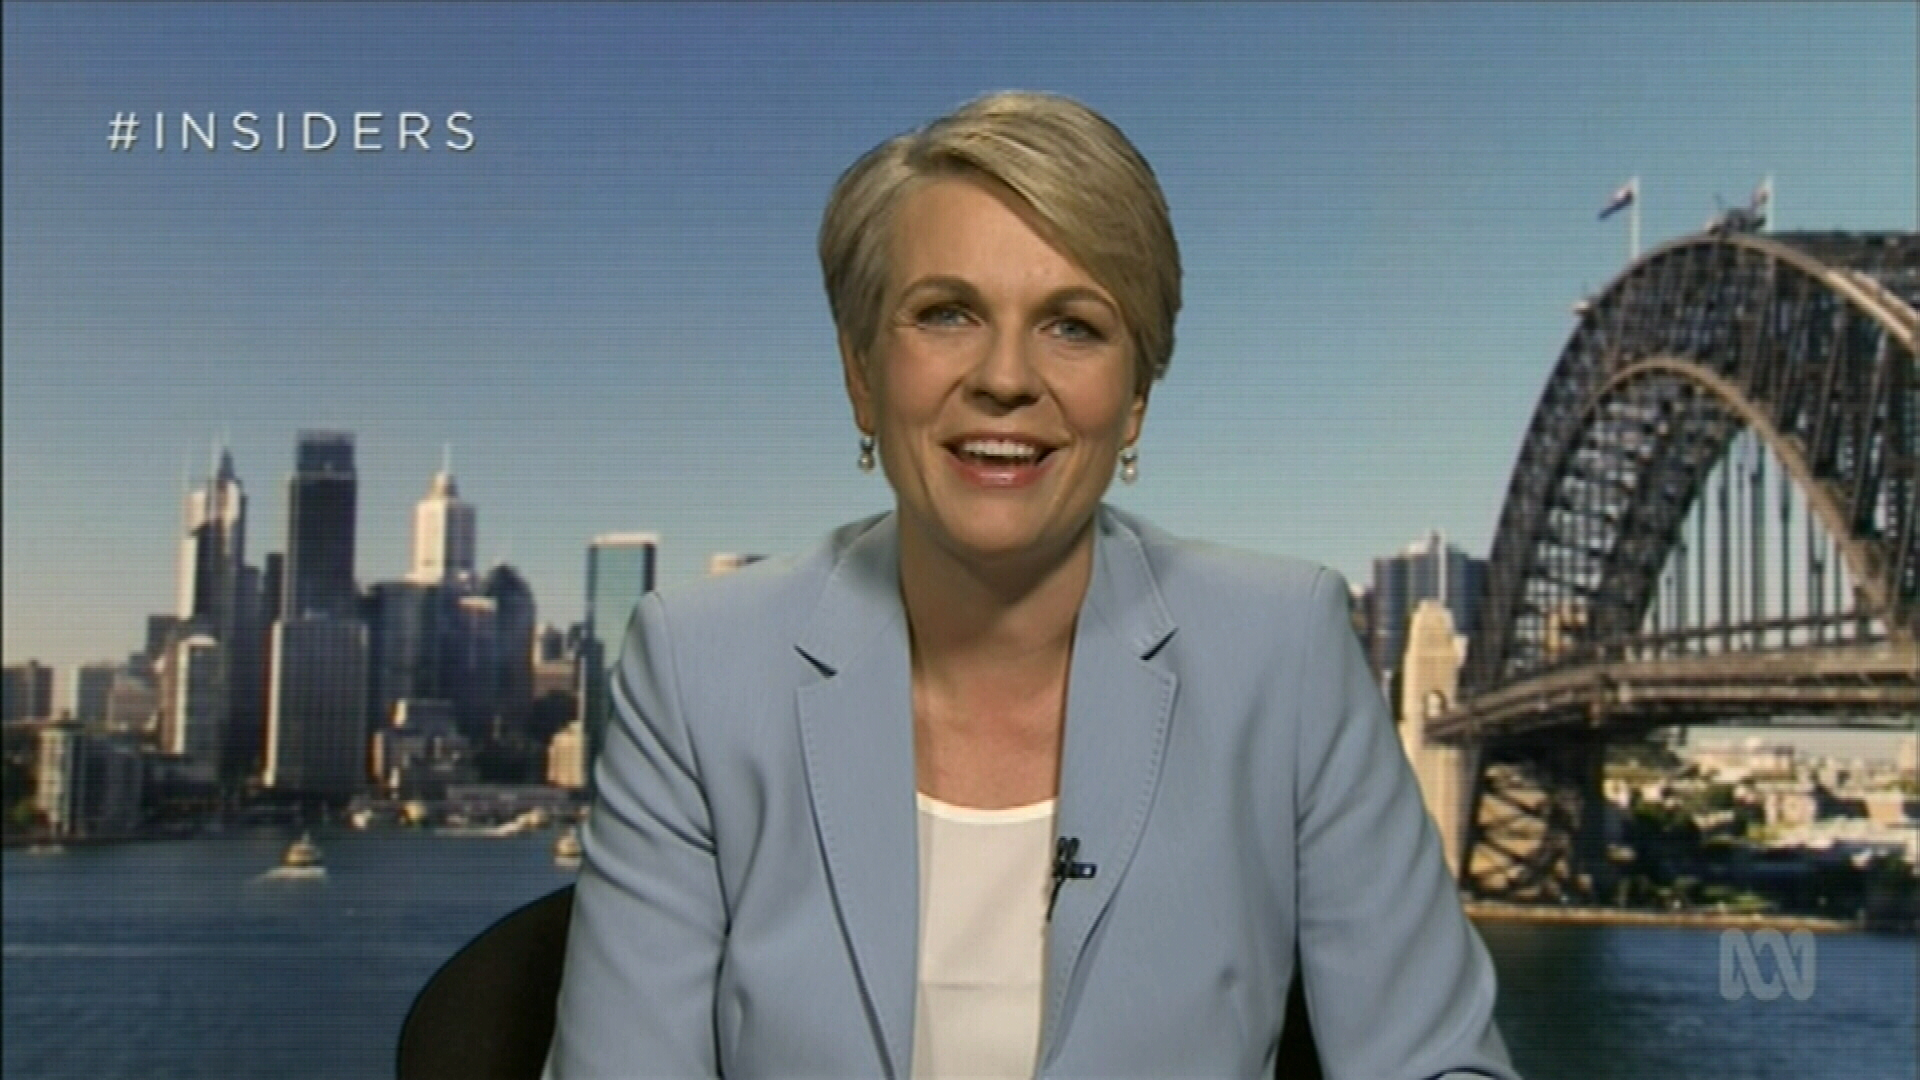 Tanya Plibersek considers running for Labor leadership